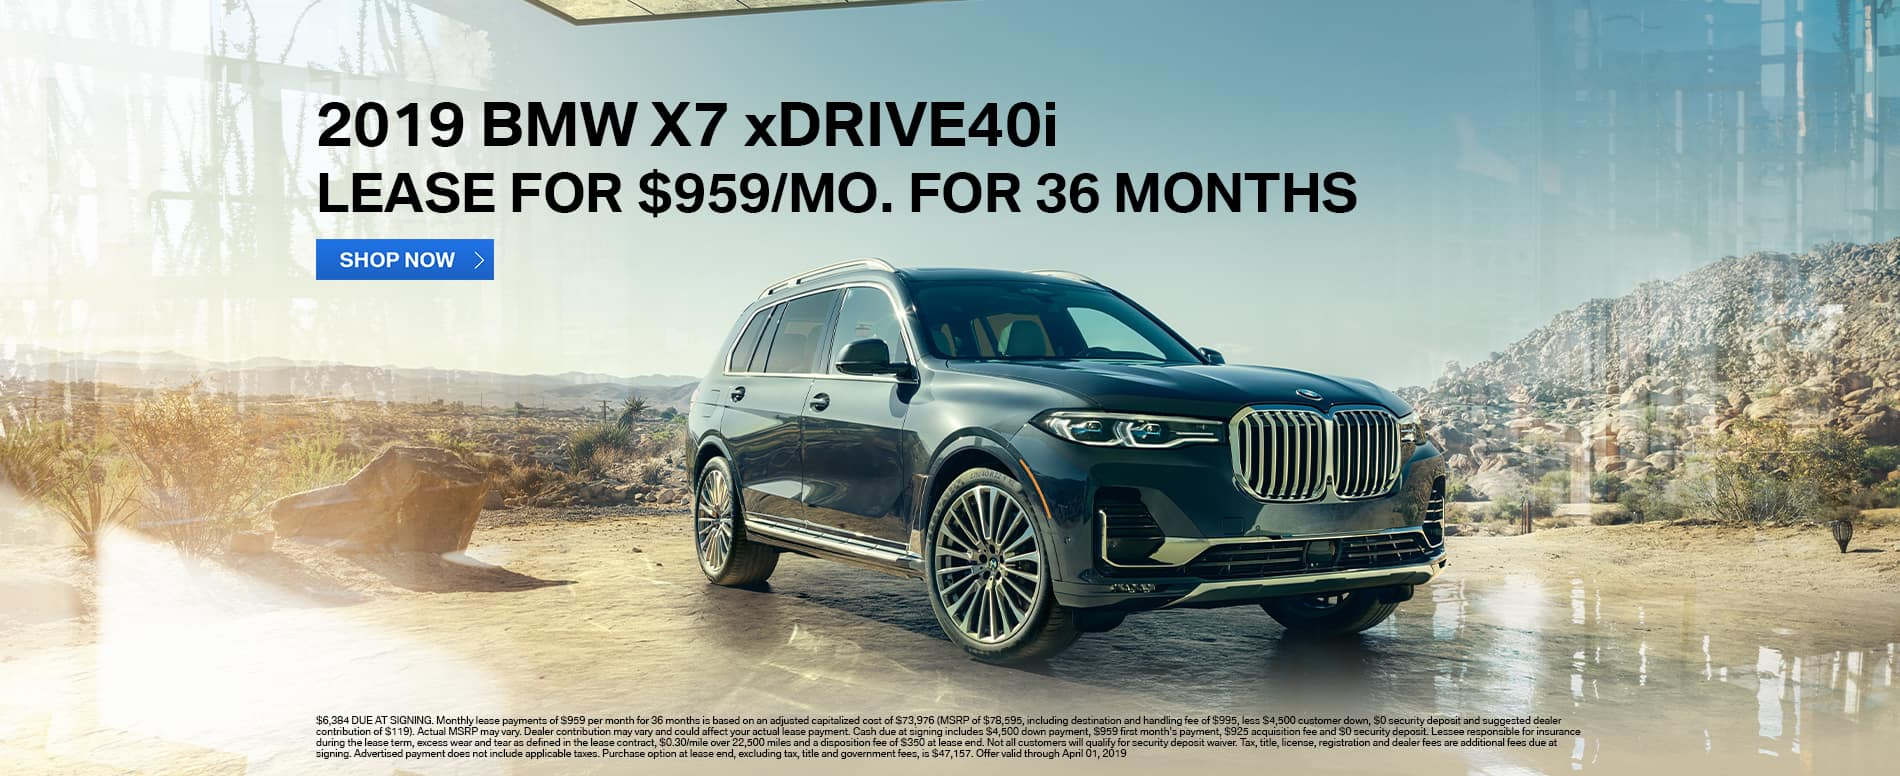 lease-2019-x7-xdrive40i-for-959-mo-beaumont-tx